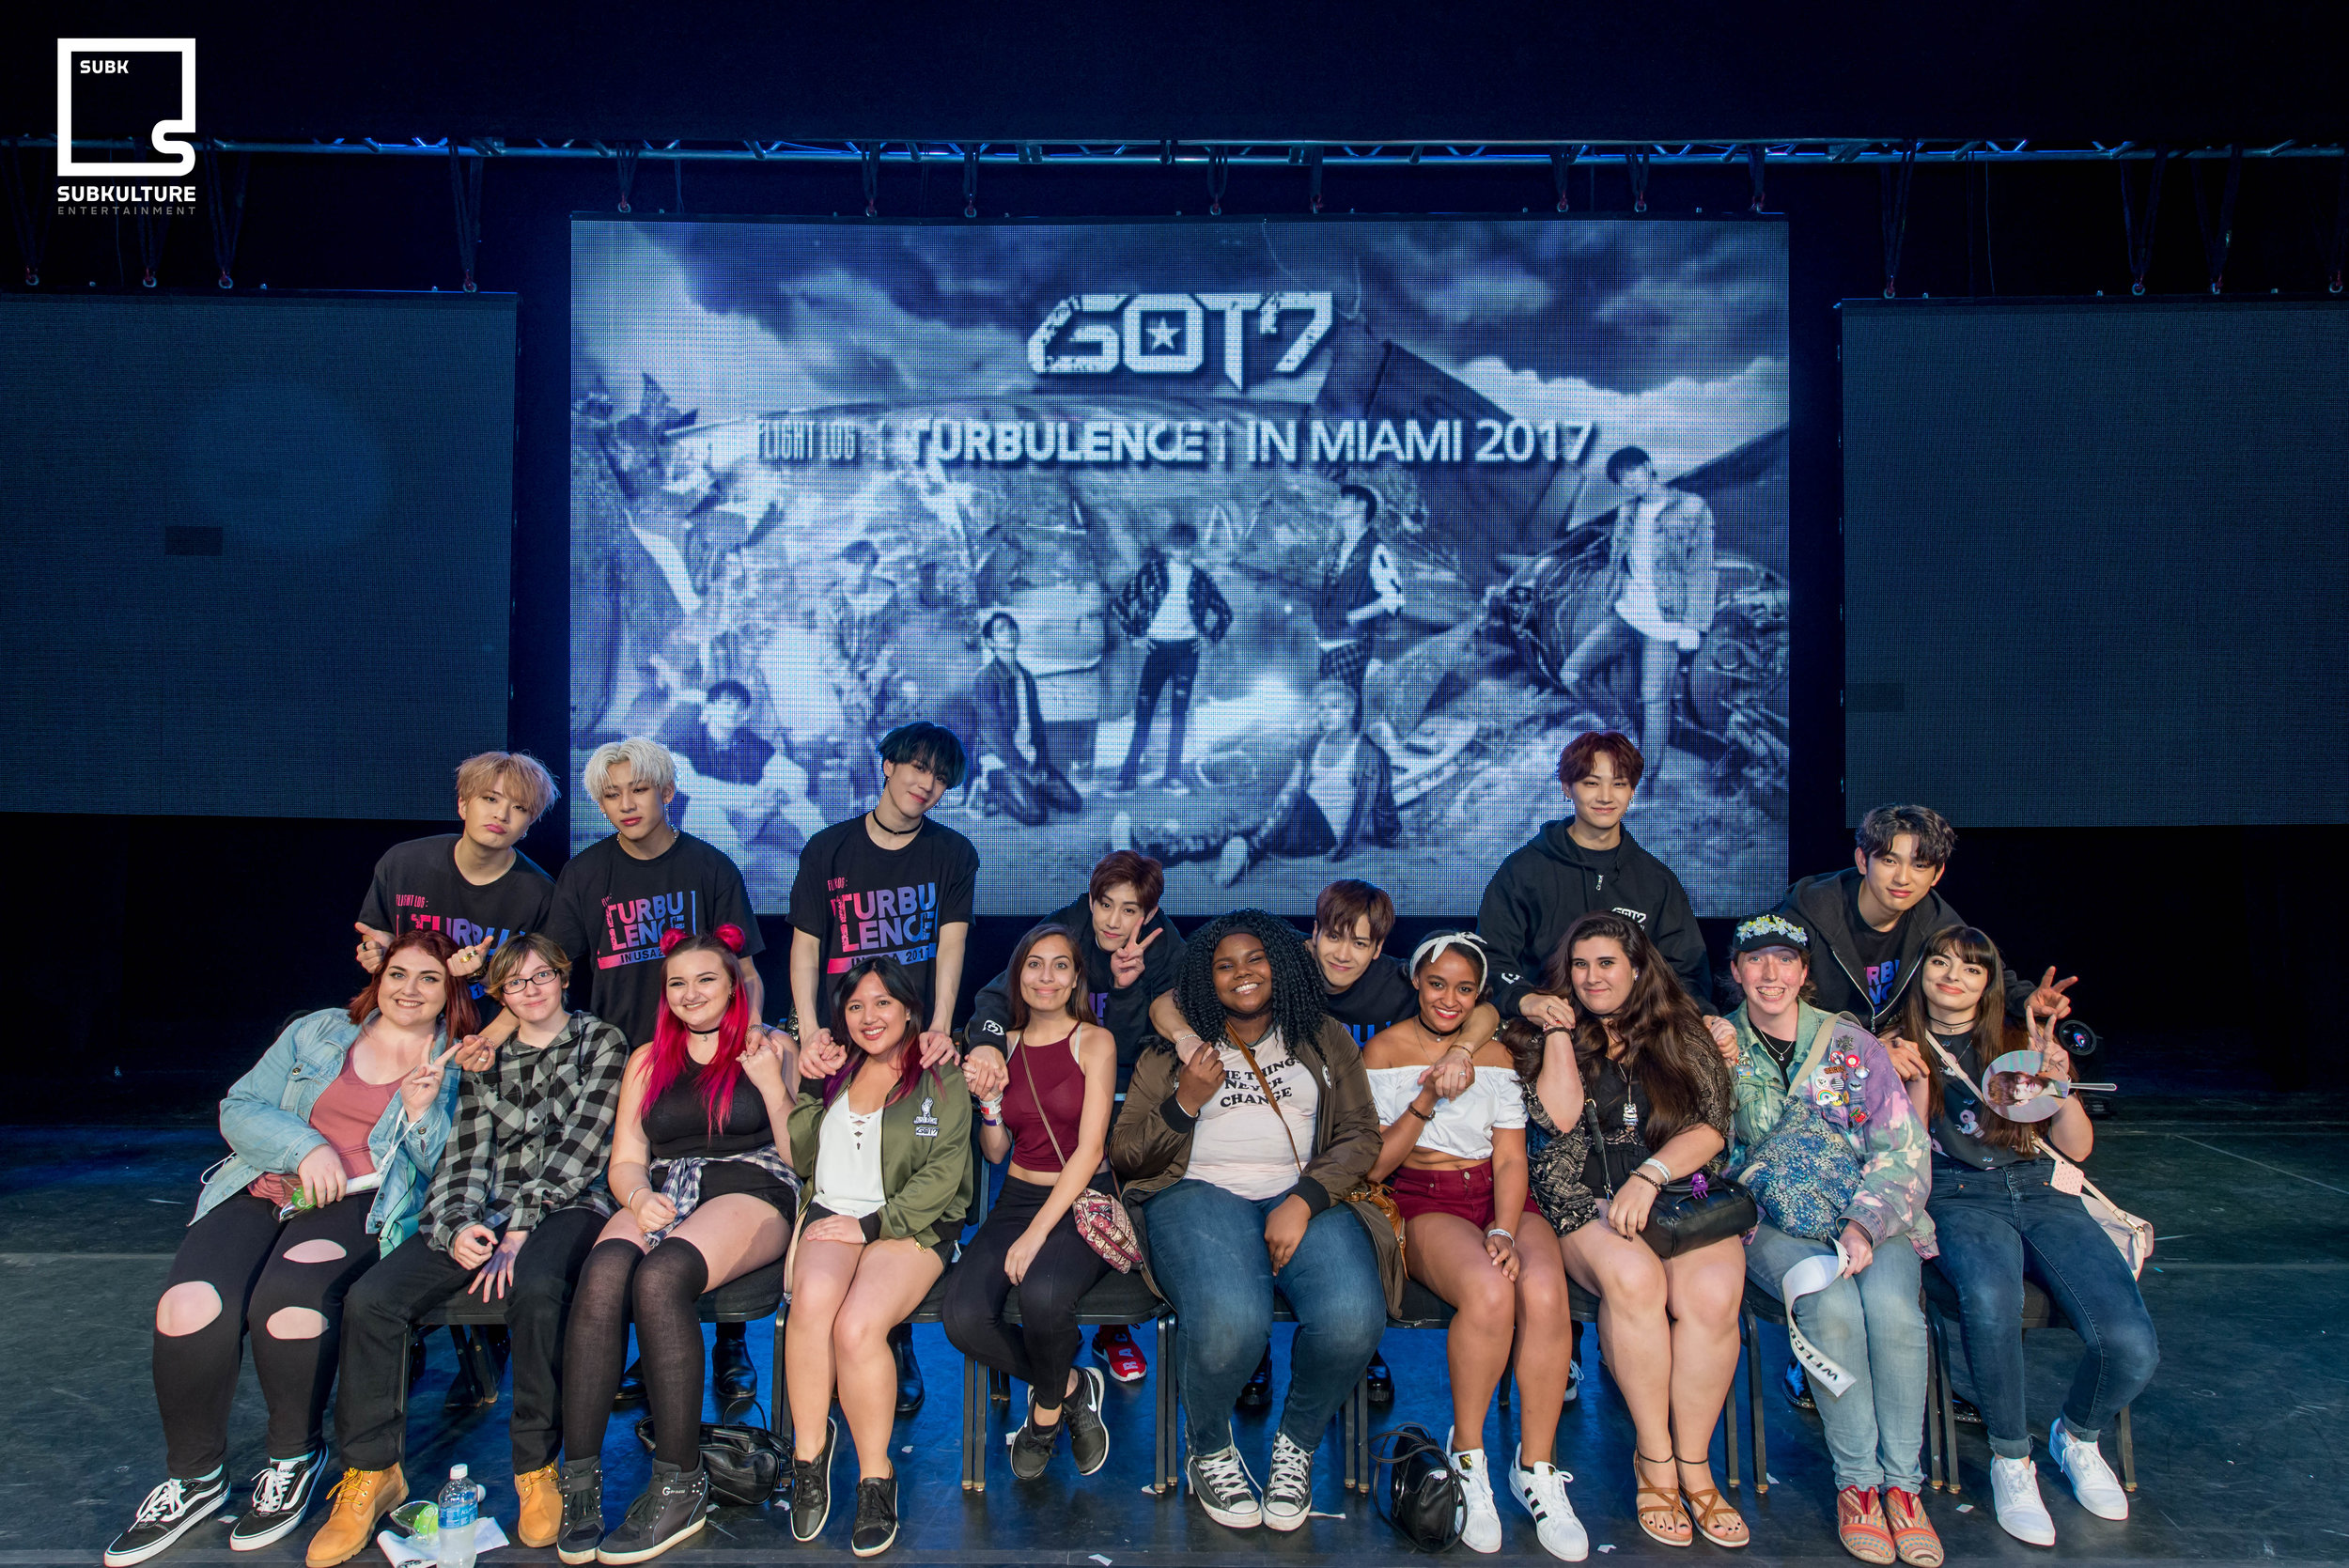 GOT7 Fan Photos Miami -1144 copy.jpg